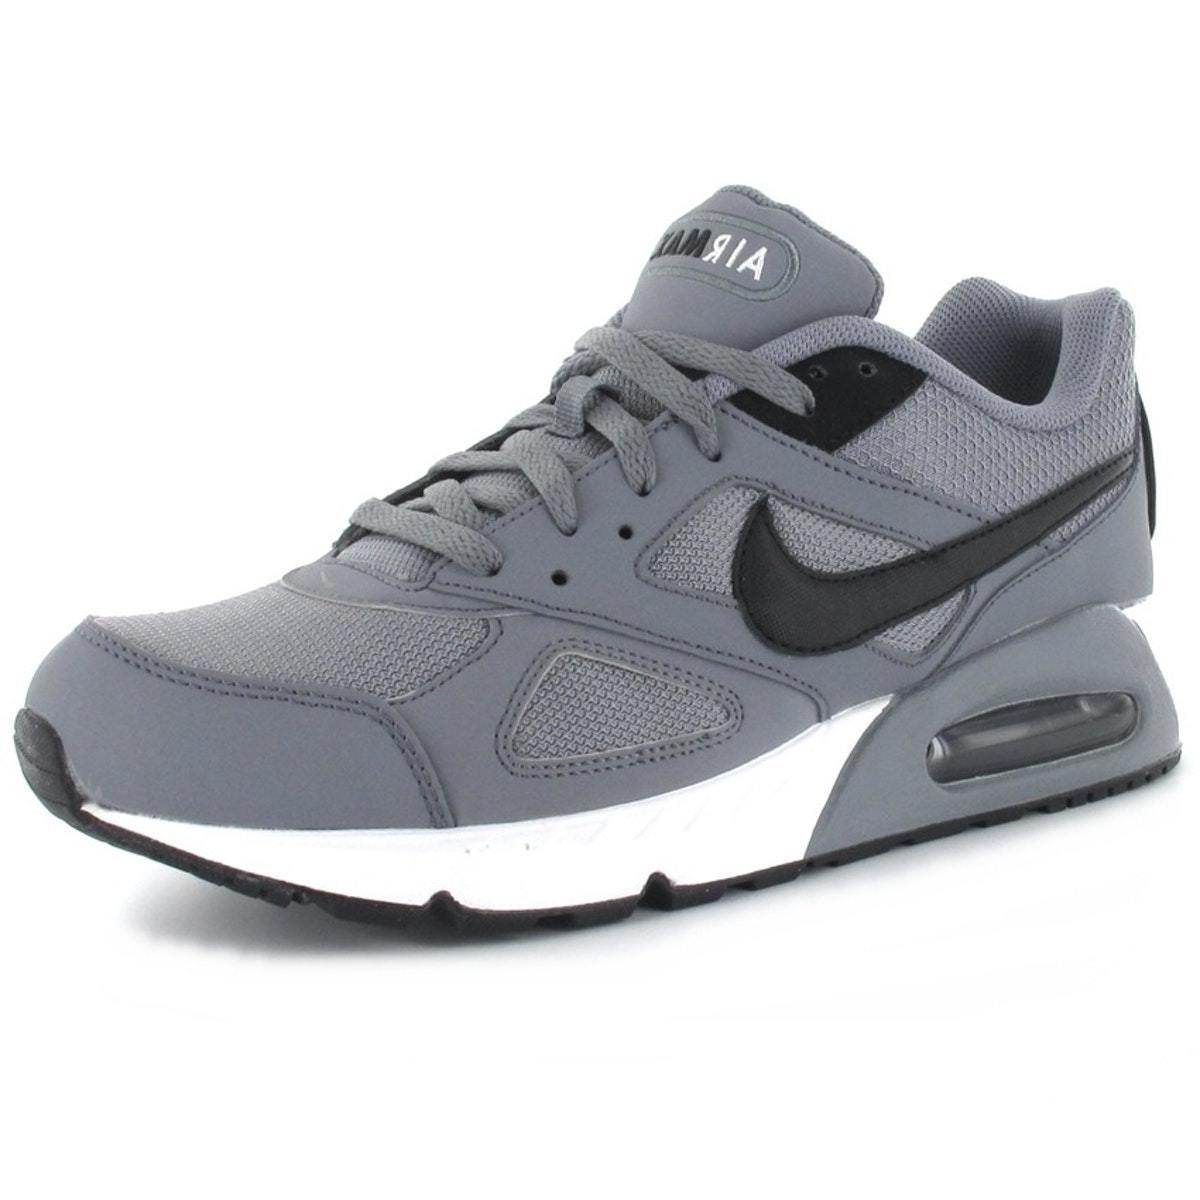 on sale d5afa 4d31f Men s Nike Air Max IVO Running Shoes, 580518 and 50 similar items. 57